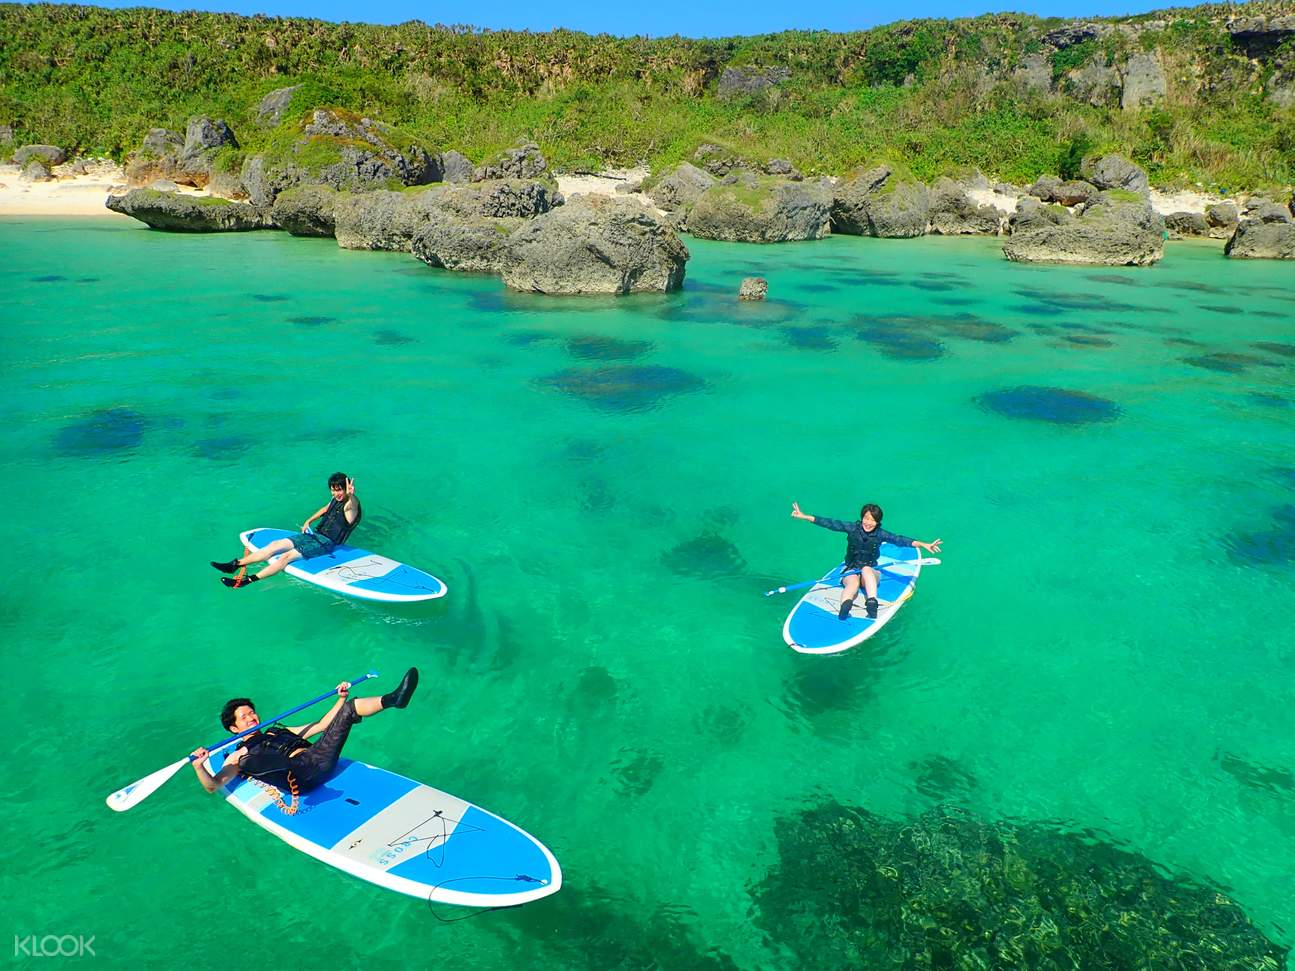 SUP/Canoe and Tropical Snorkeling